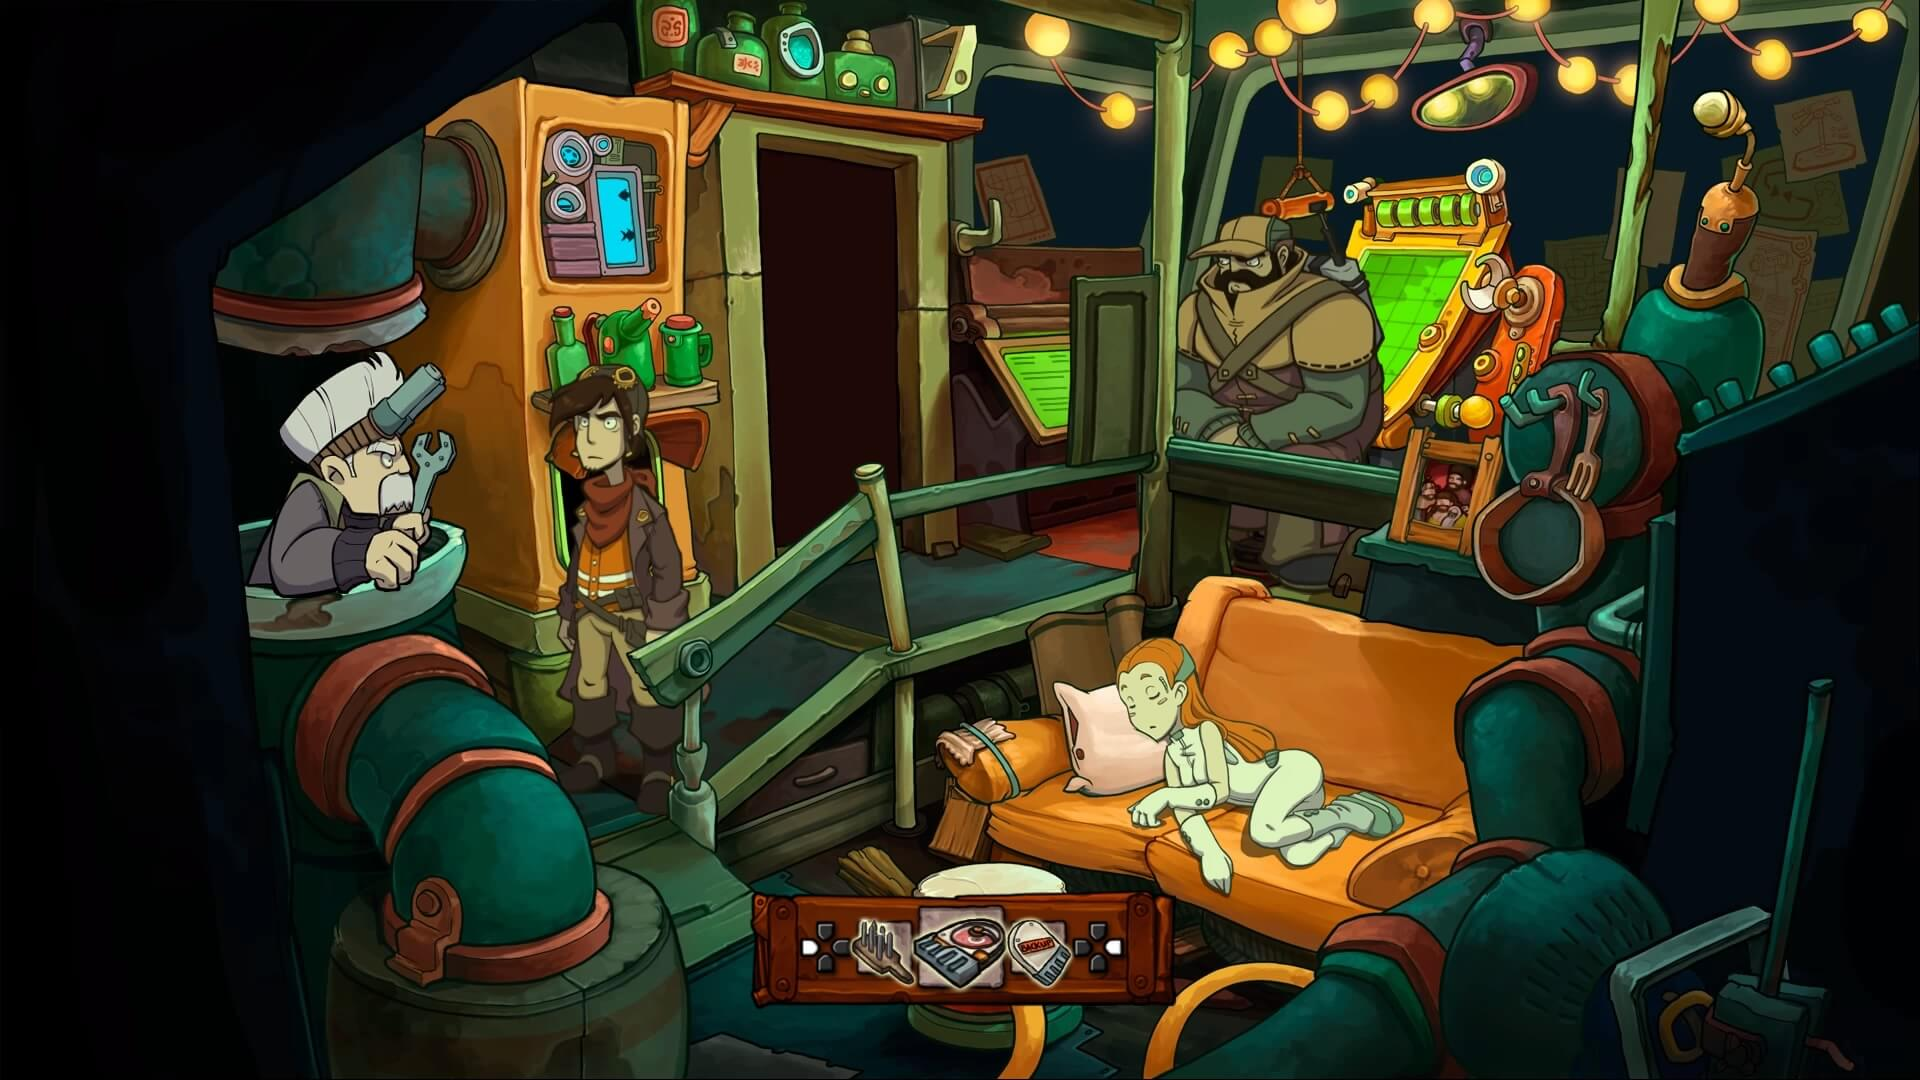 deponia_interface_4